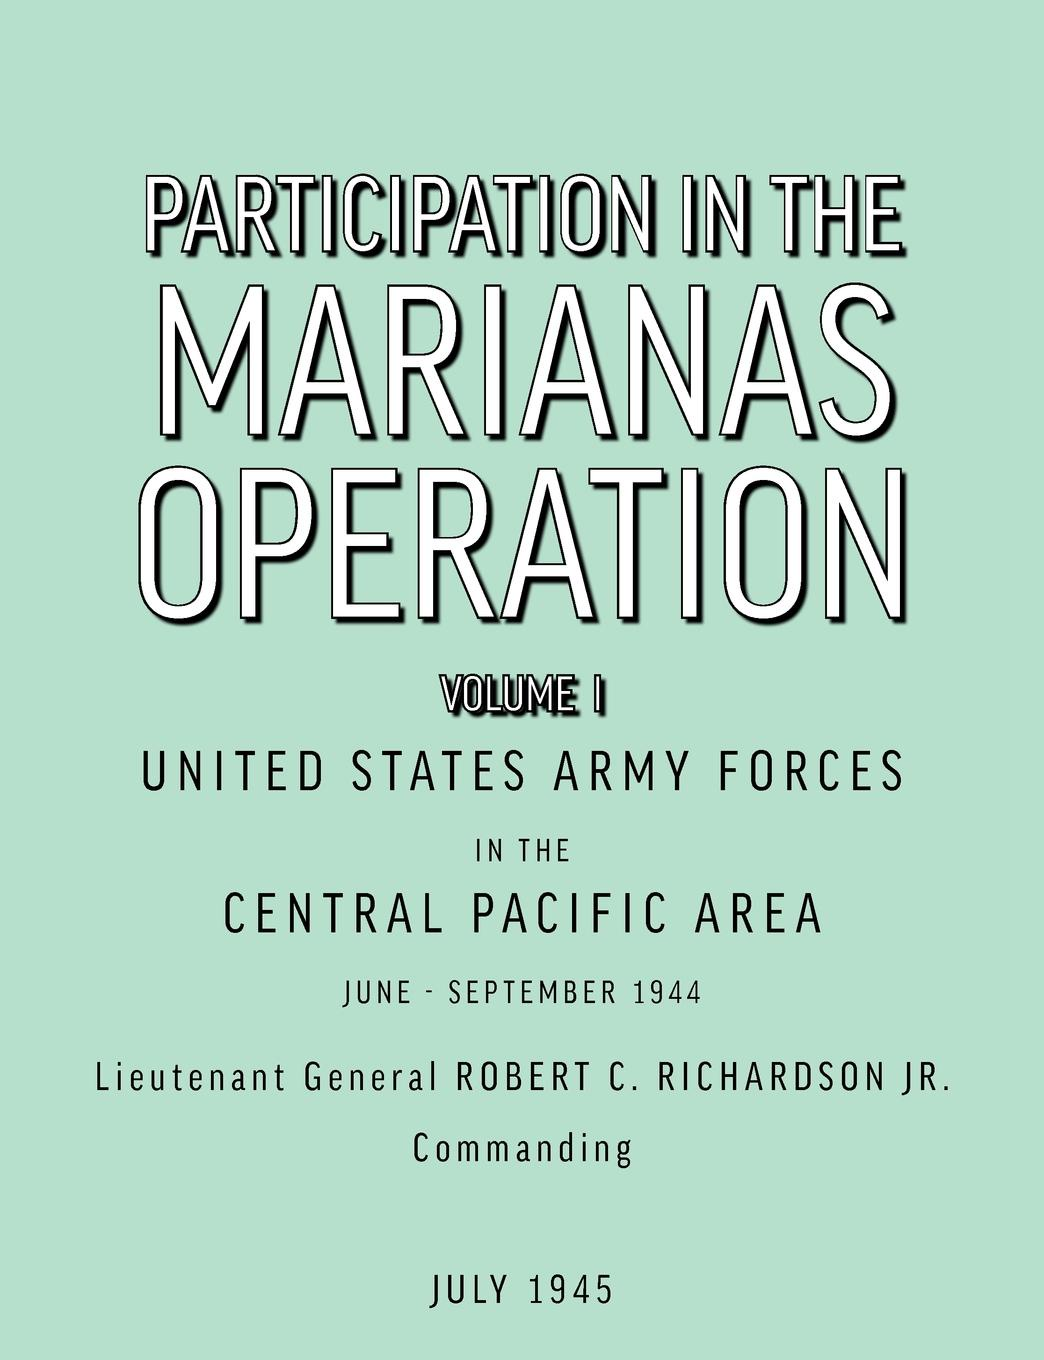 U.S. ArmyForcesin theCentralPaci Participation in the Marianas Operation Volume I цены